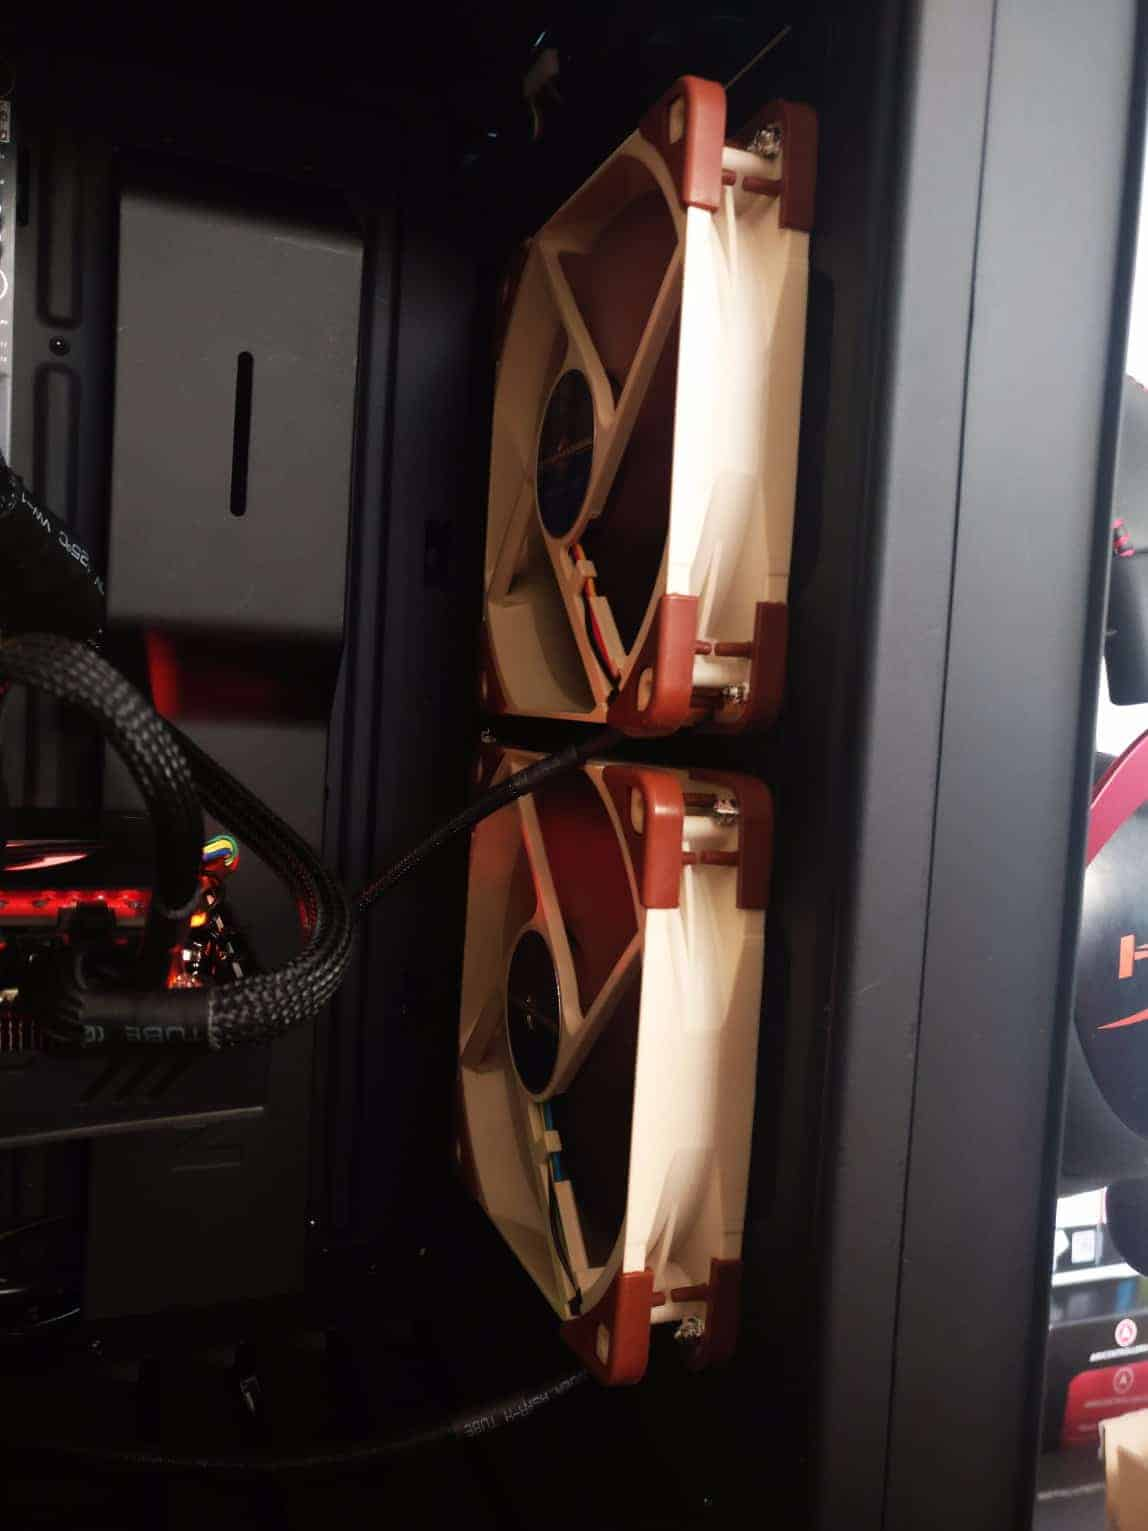 Noctua-Case-Fans-Photos22 Noctua NF-S12A 120mm Case Fan Review